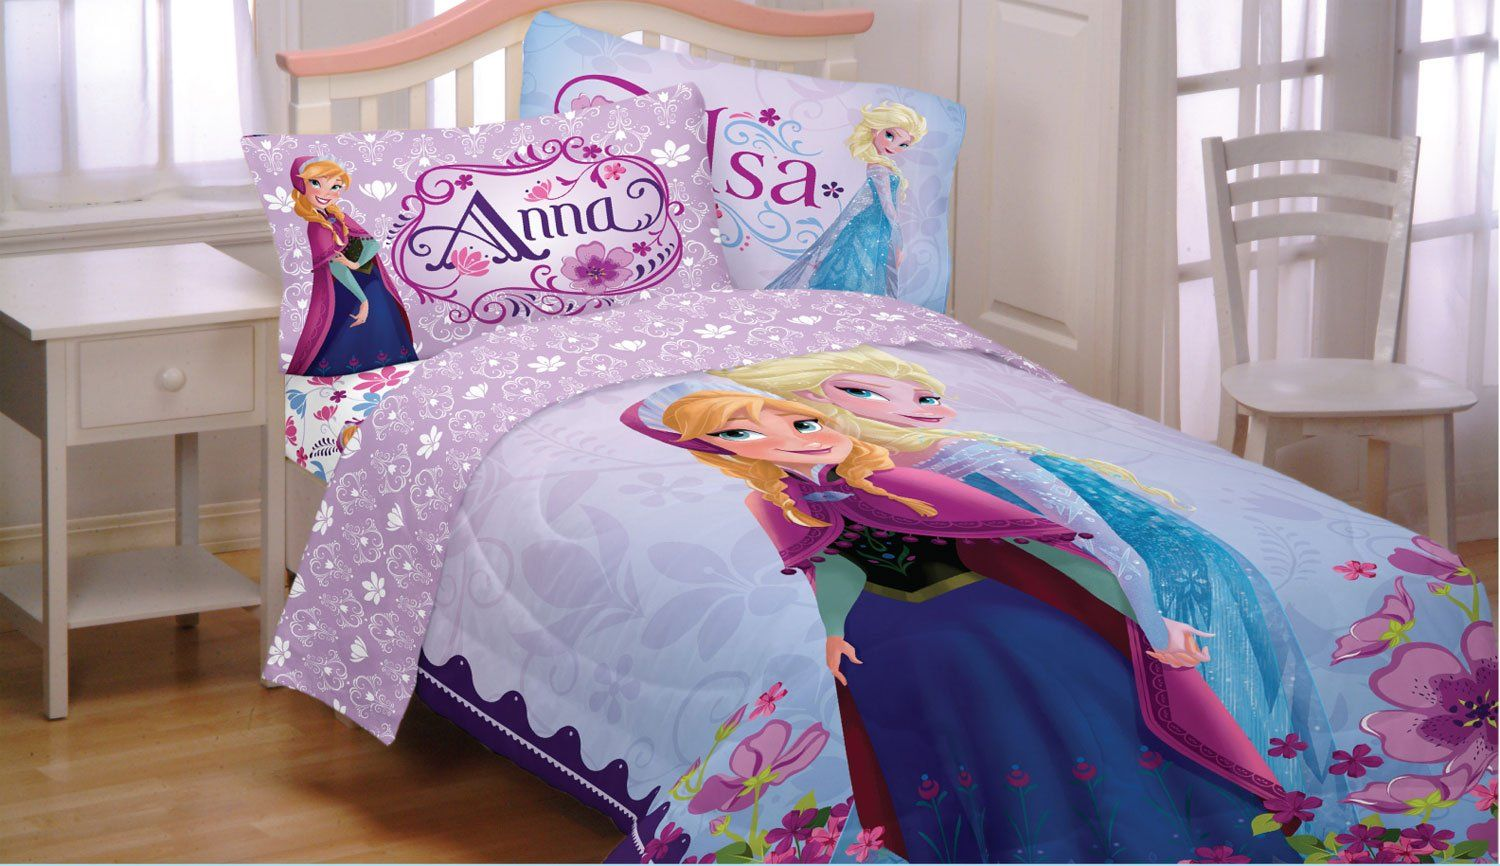 Disney S Frozen Princess Anna Elsa Full Comforter Sheet Set T 5 Piece Bed In A Bag By Disney Celebrate Love Wi Bett Ideen Tagesdecke Teenager Bettwäsche